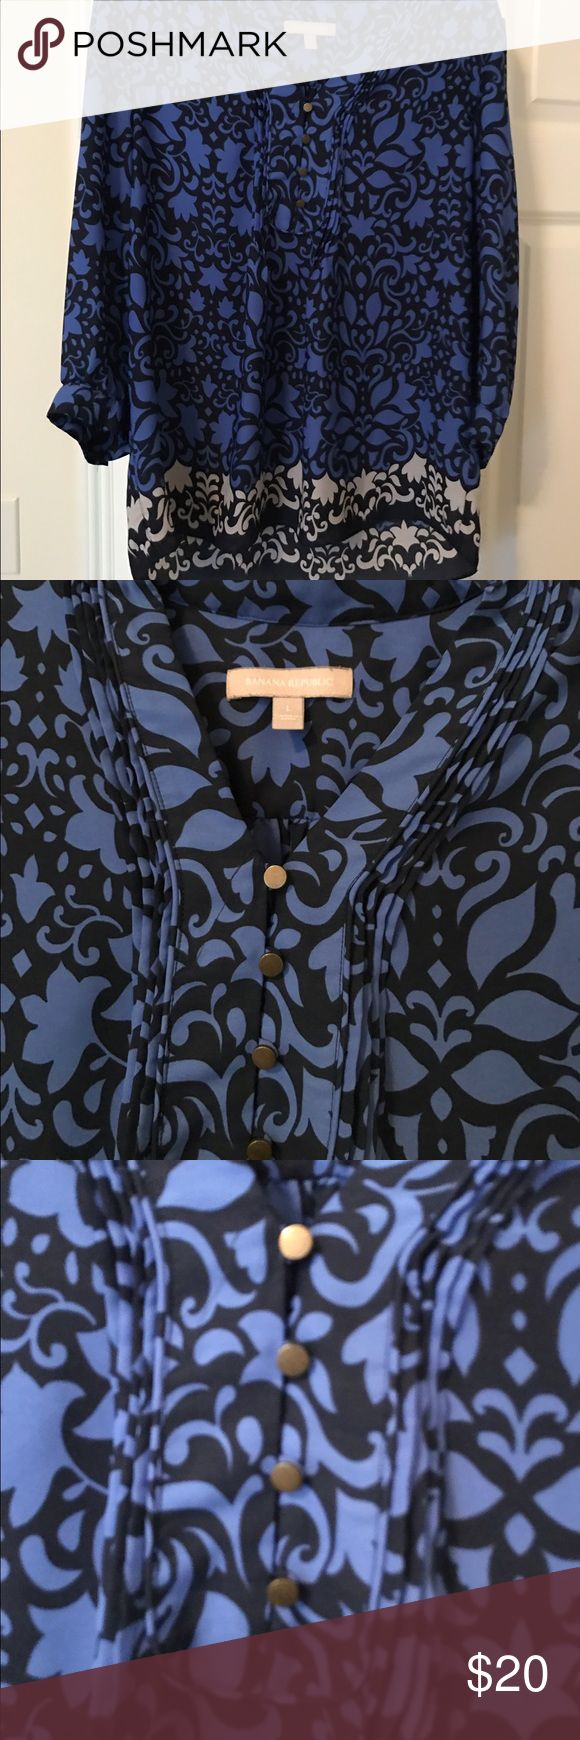 EUC Banana Republic Blue/Black Pattern Blouse Blouse with gold button details. Great career piece or date night. Flowing feel to it, can easily be a maternity piece for the first few months. Banana Republic Tops Blouses